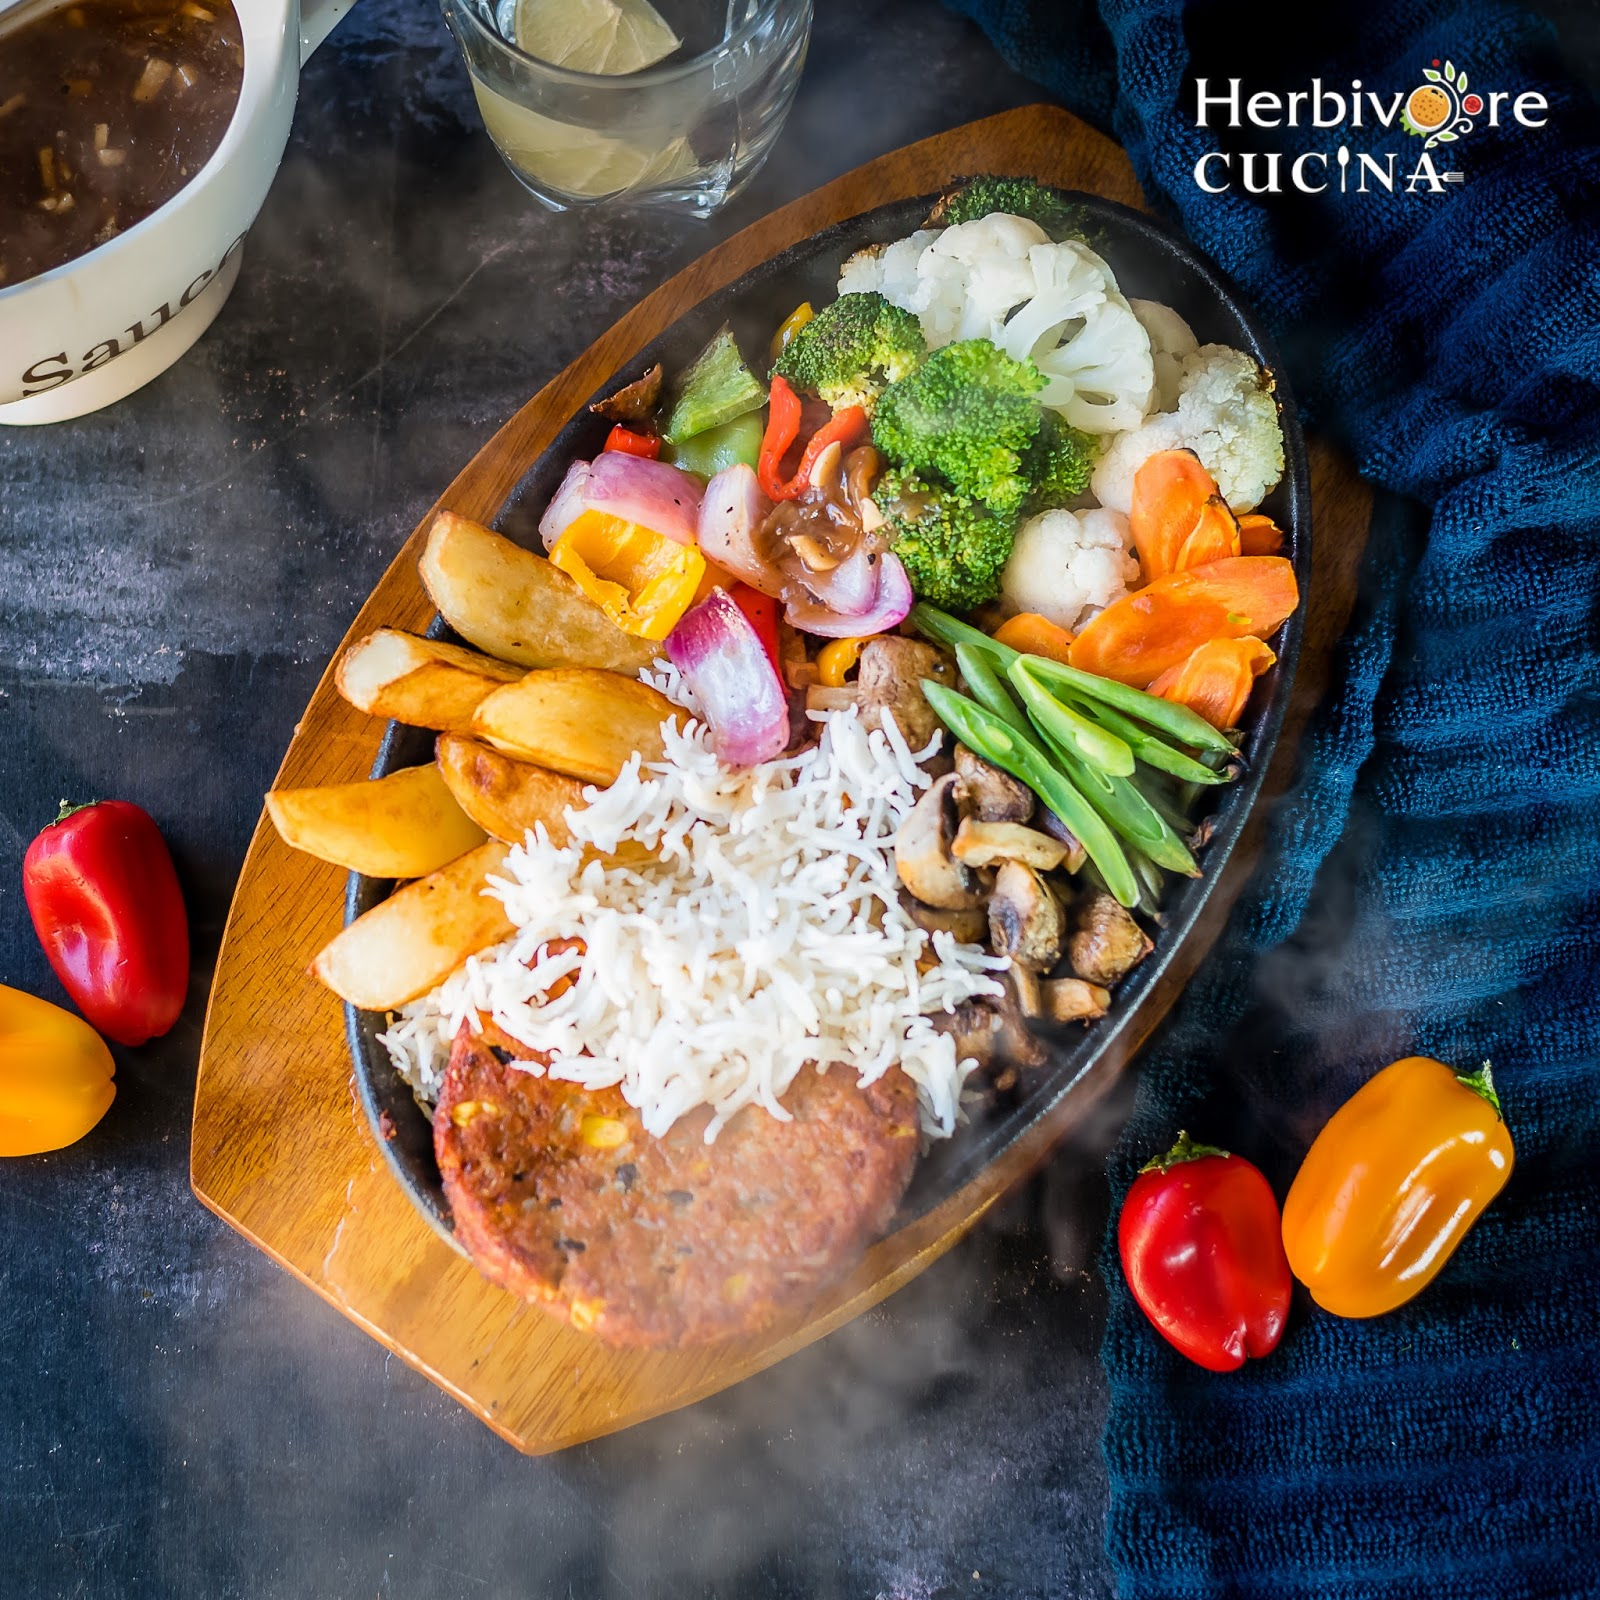 Herbivore Cucina: Vegetable and Patty Sizzler